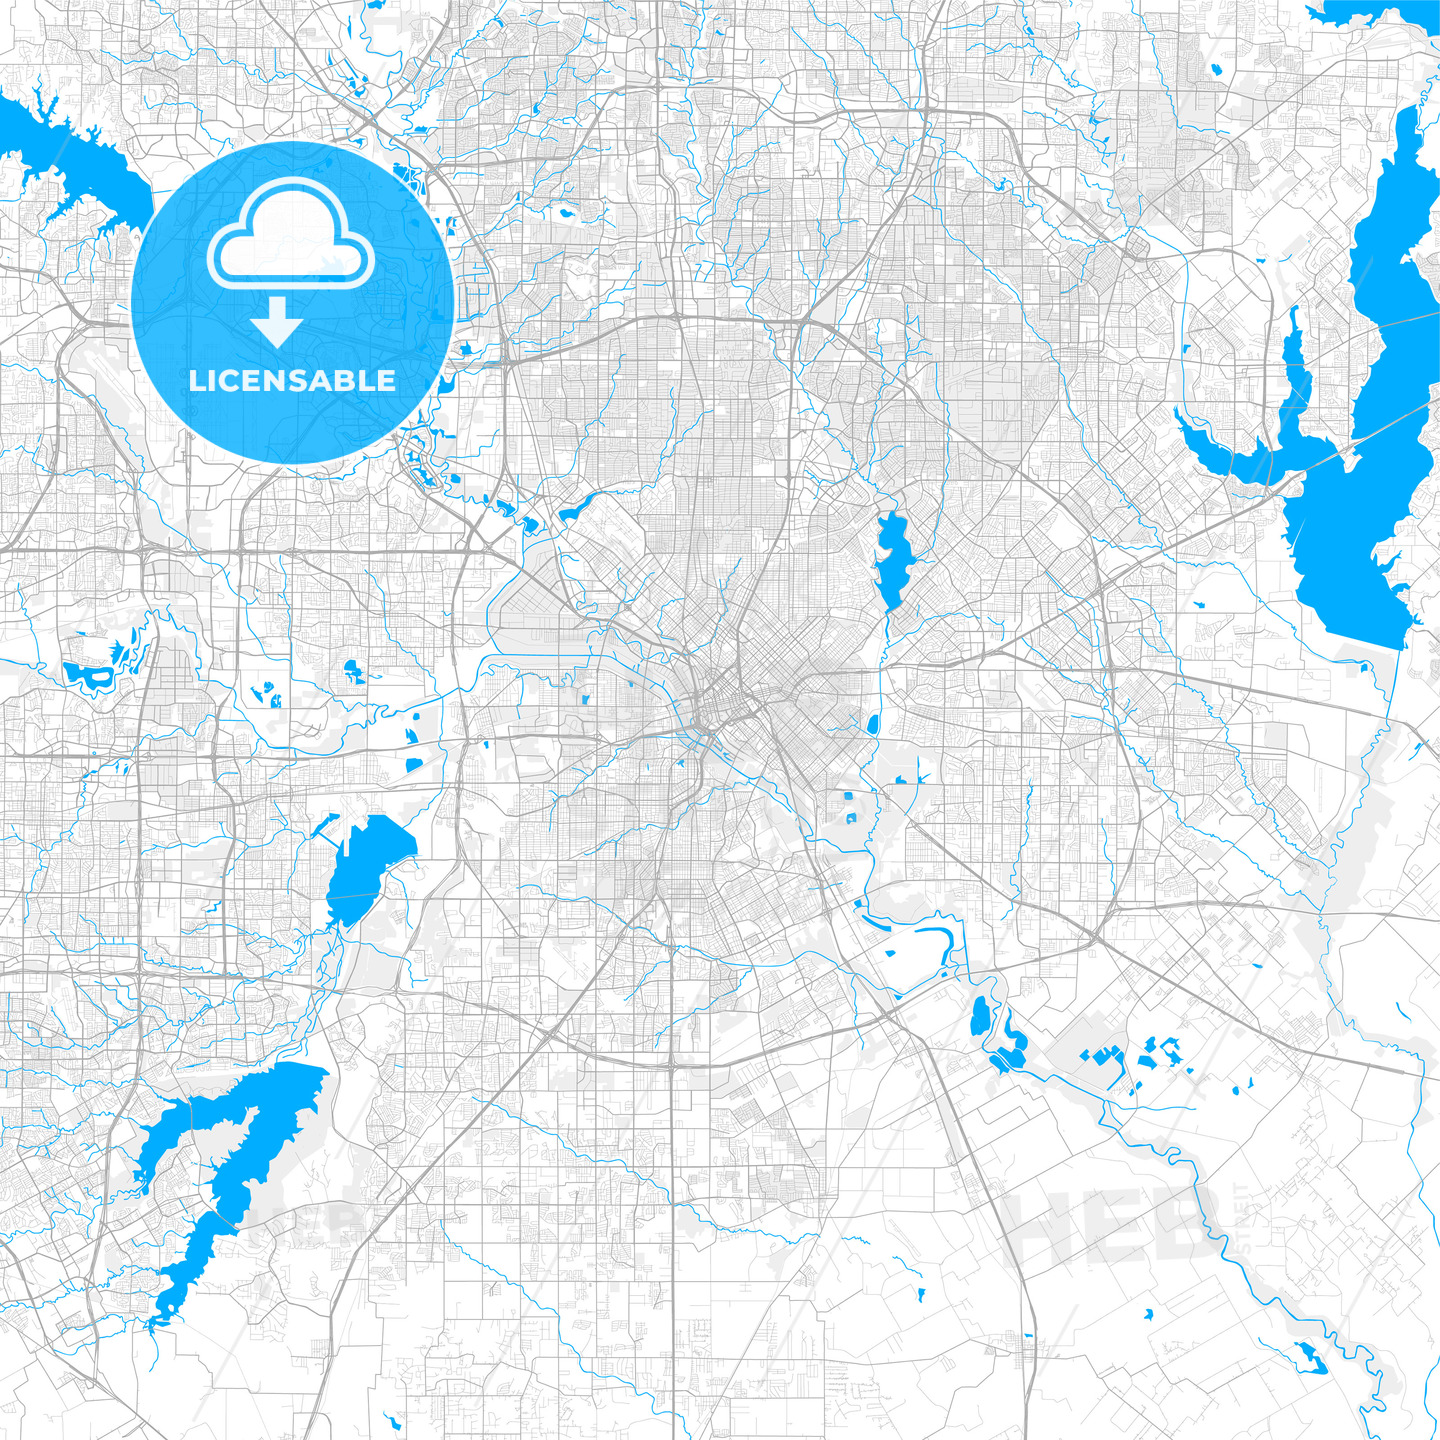 Rich detailed vector map of Dallas, Texas, U.S.A. on lakes of texas, detailed texas map with cities and towns, well known landmarks in texas, the three branch of texas, us map texas, hotels of texas, all cities in texas, mapquest maps south texas, austin texas, sun of texas, google of texas, weather of texas, detailed texas road atlas, winds of texas, project of texas, republic of texas, borger tx map texas, southern coast of texas, flickr texas, business of texas,